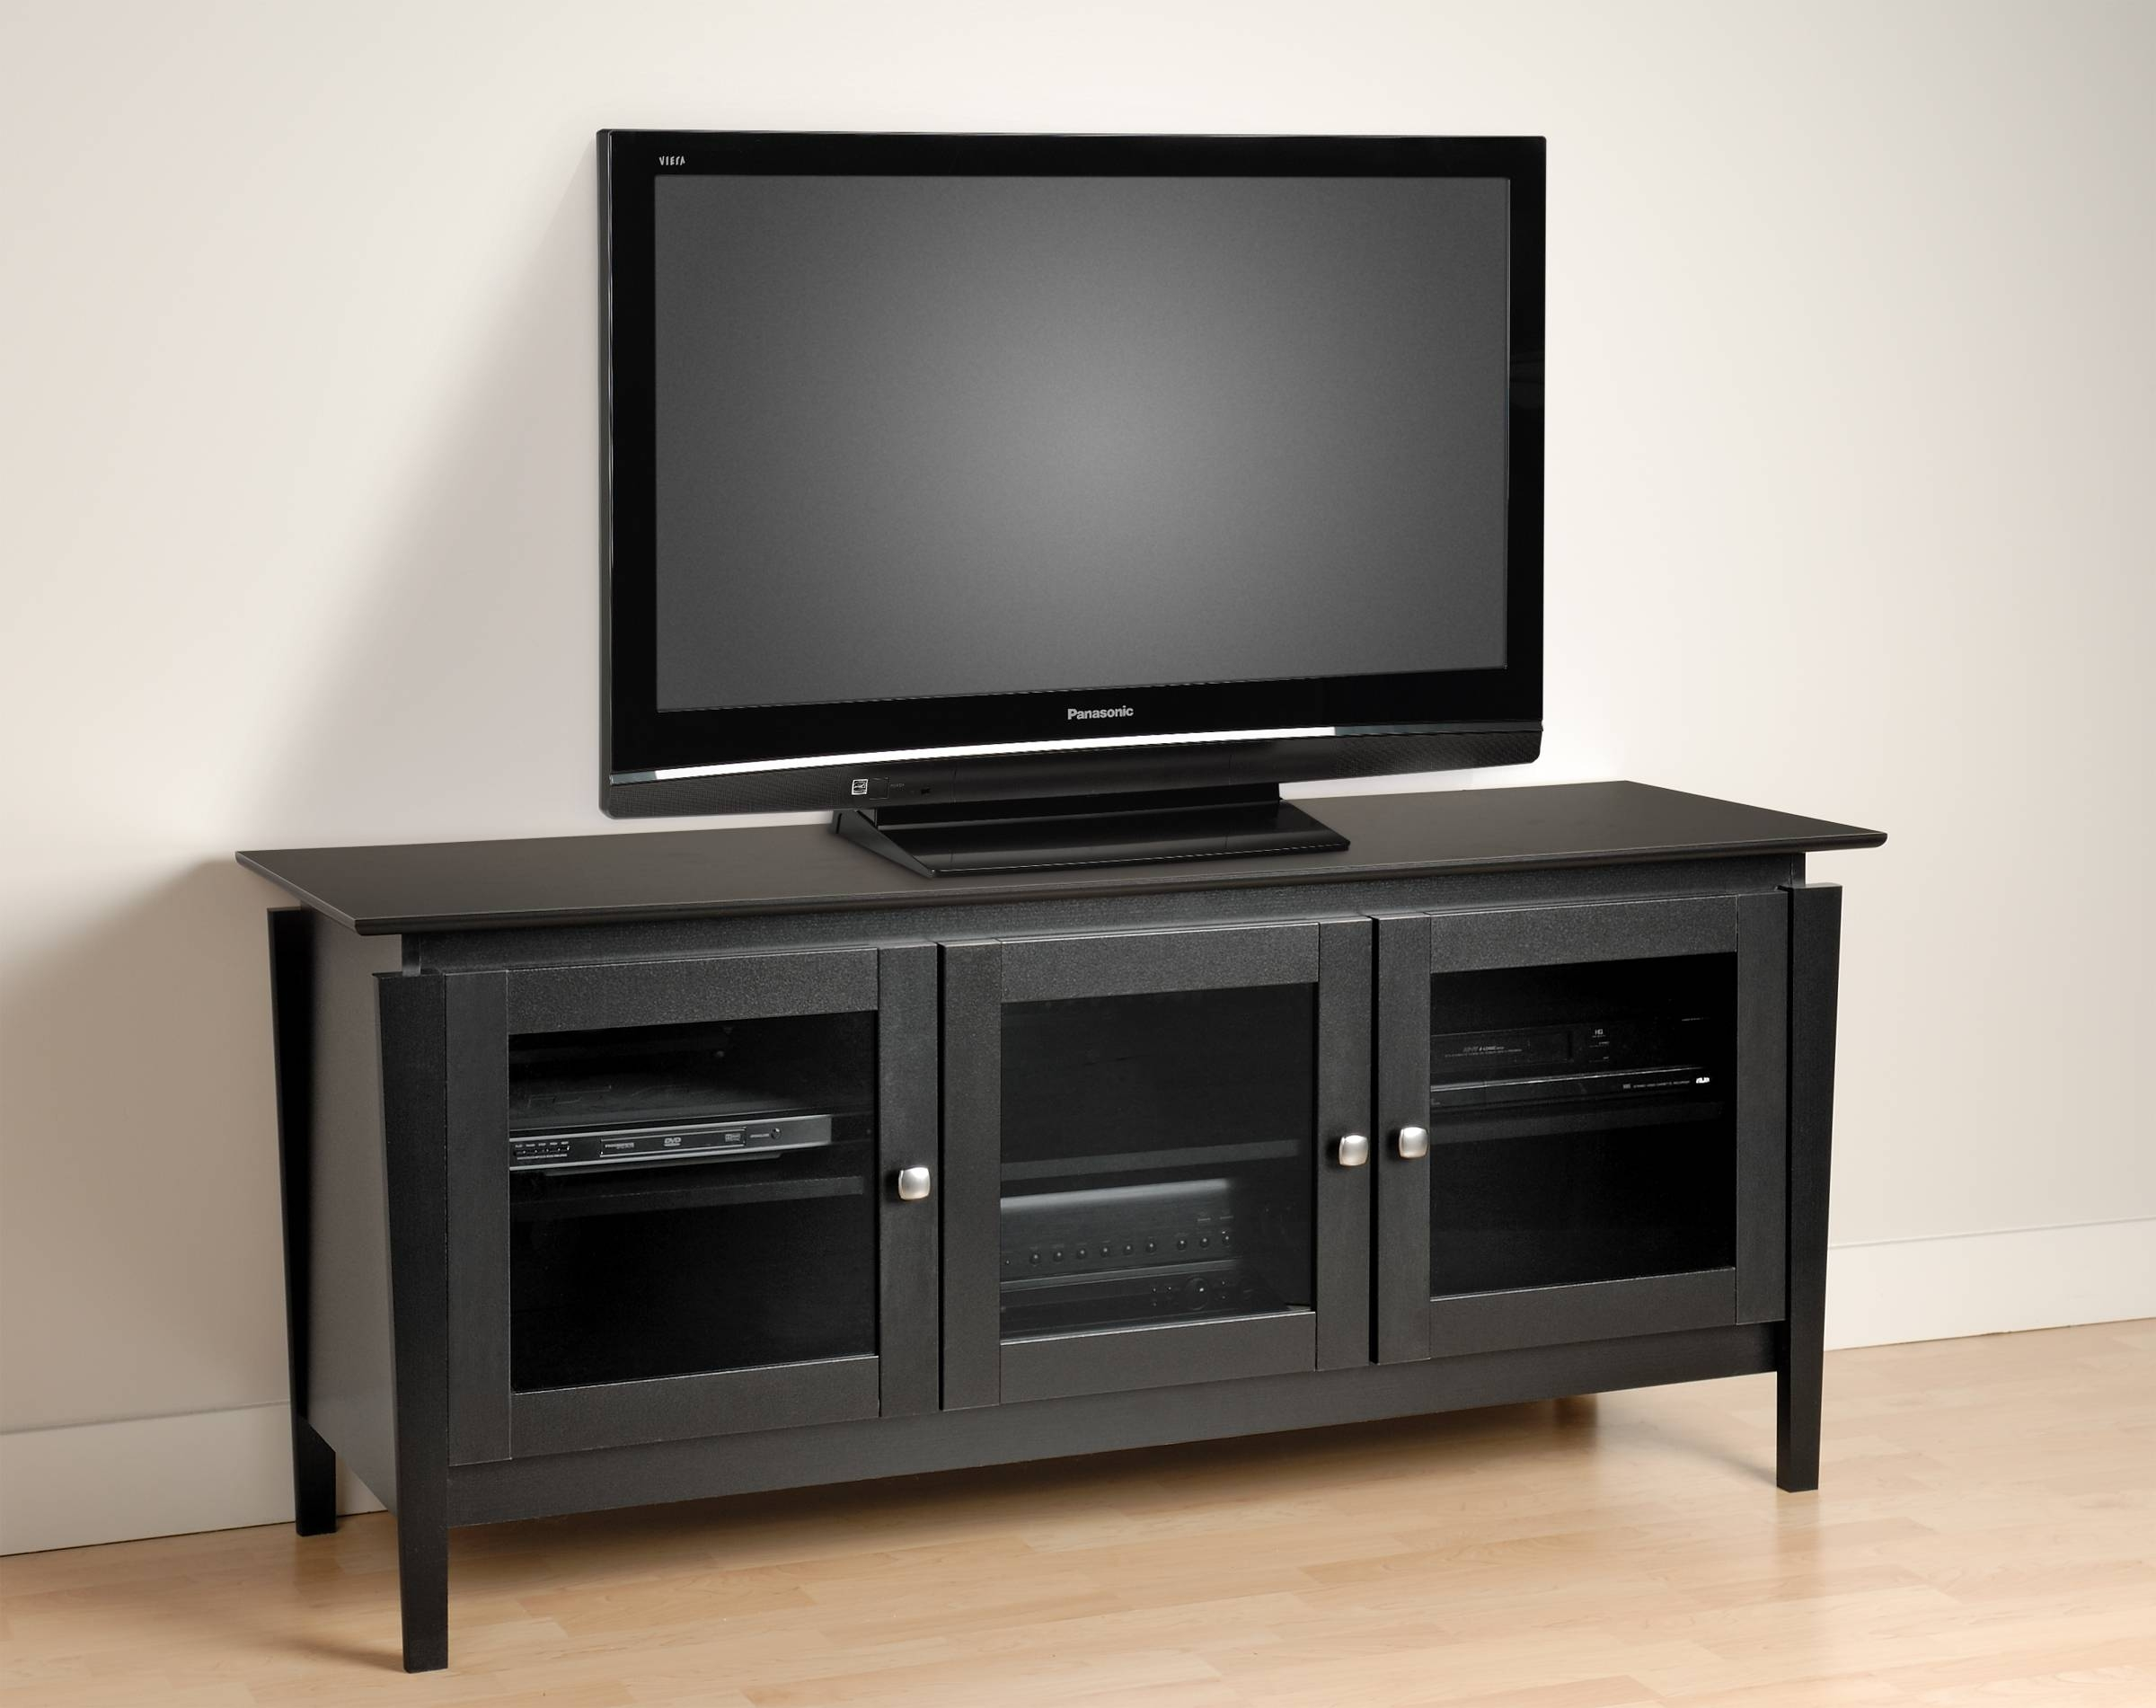 Black Wooden Tv Cabinets With Glass Doors And Steel Knob On Short intended for Wooden Tv Cabinets With Glass Doors (Image 2 of 15)